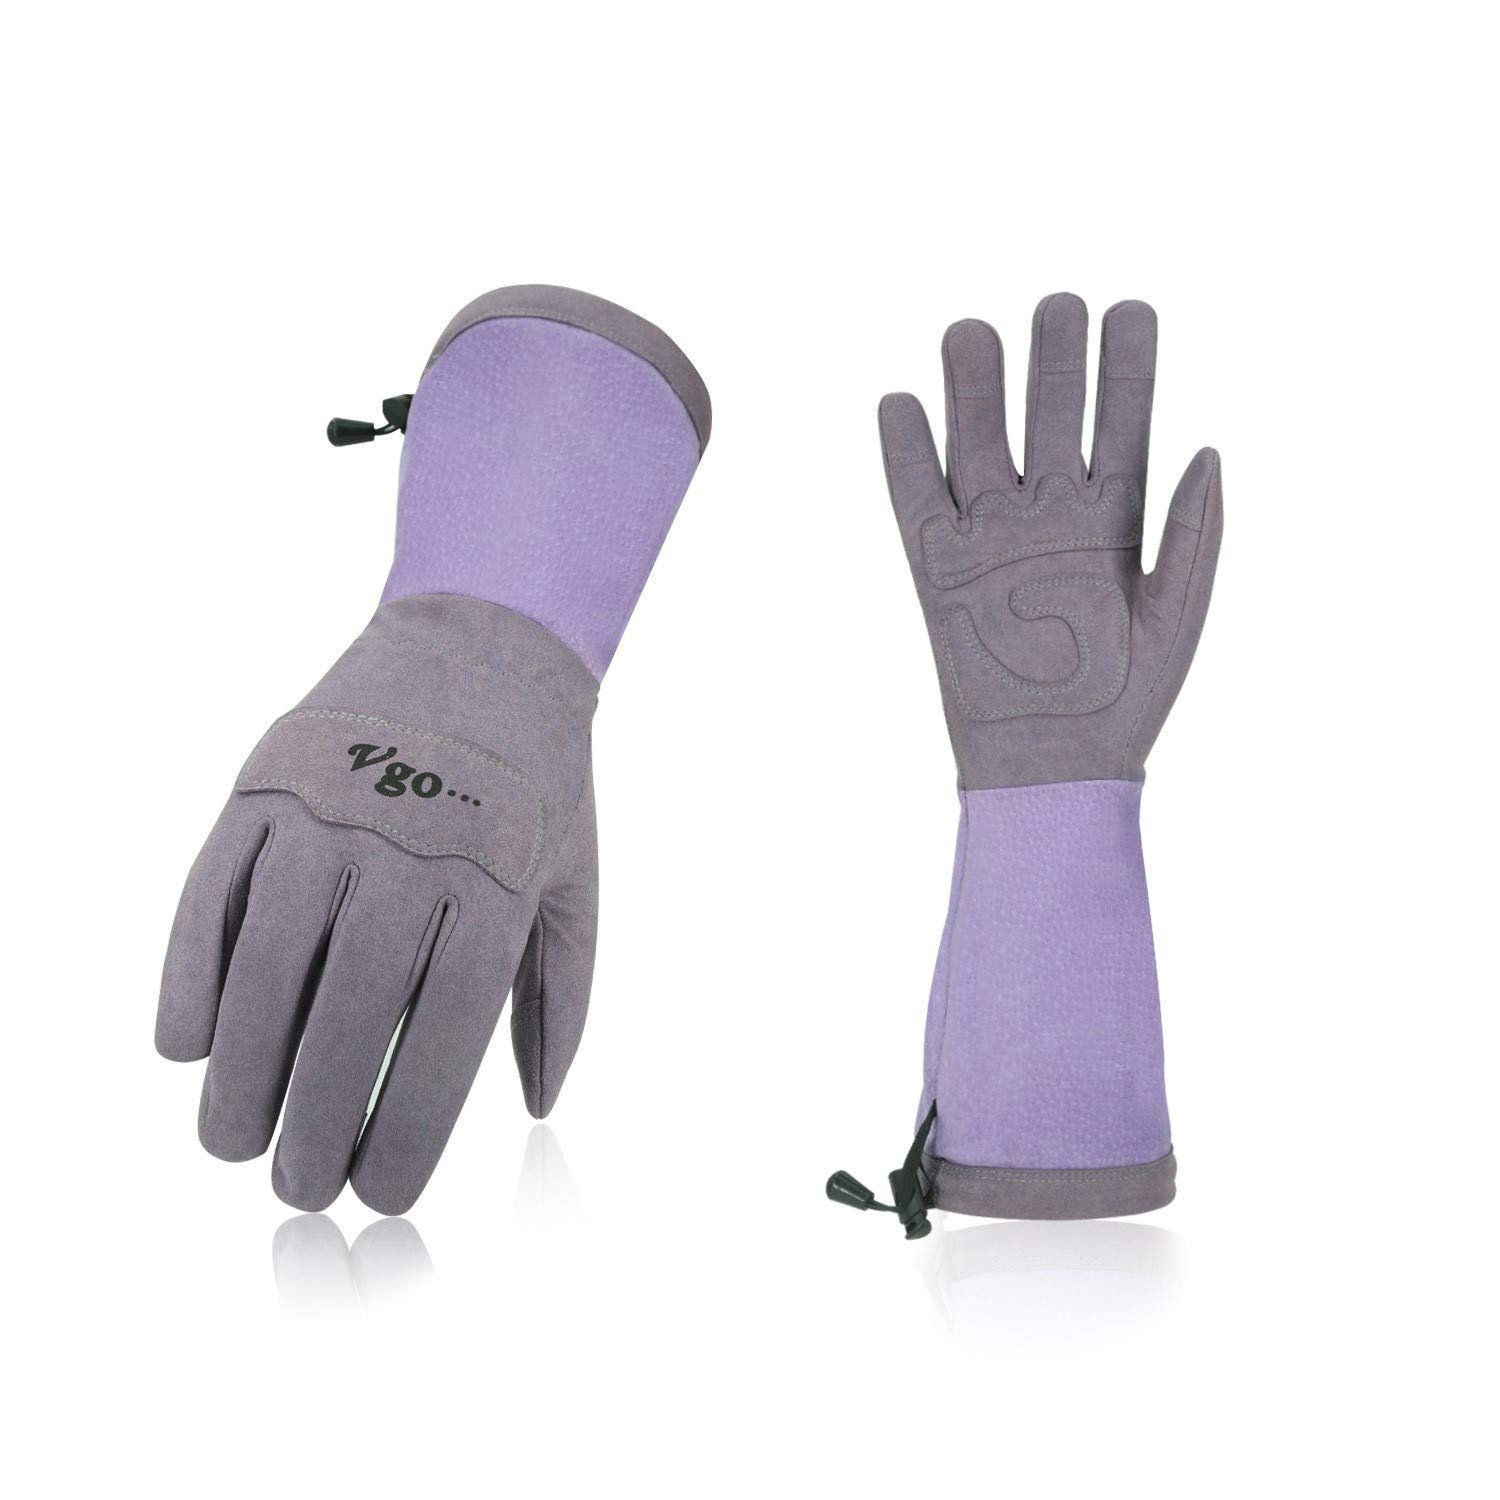 Vgo Ladies' Synthetic Leather Palm with Long Pig Split Leather Cuff Rose Garden Gloves (1Pair,Size L,Purple,SL6592W)